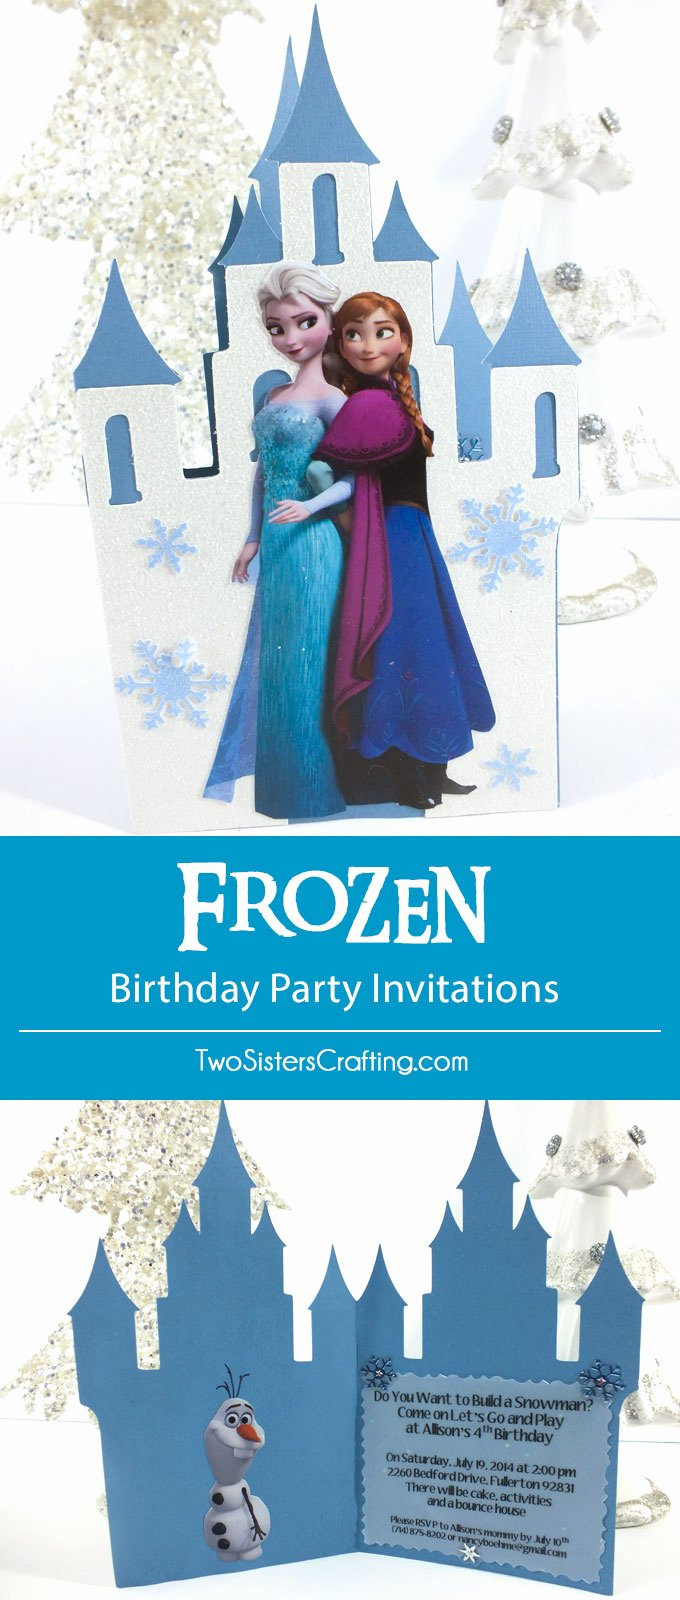 Frozen Birthday Party Invitations Beautiful Frozen Birthday Party Invitations Two Sisters